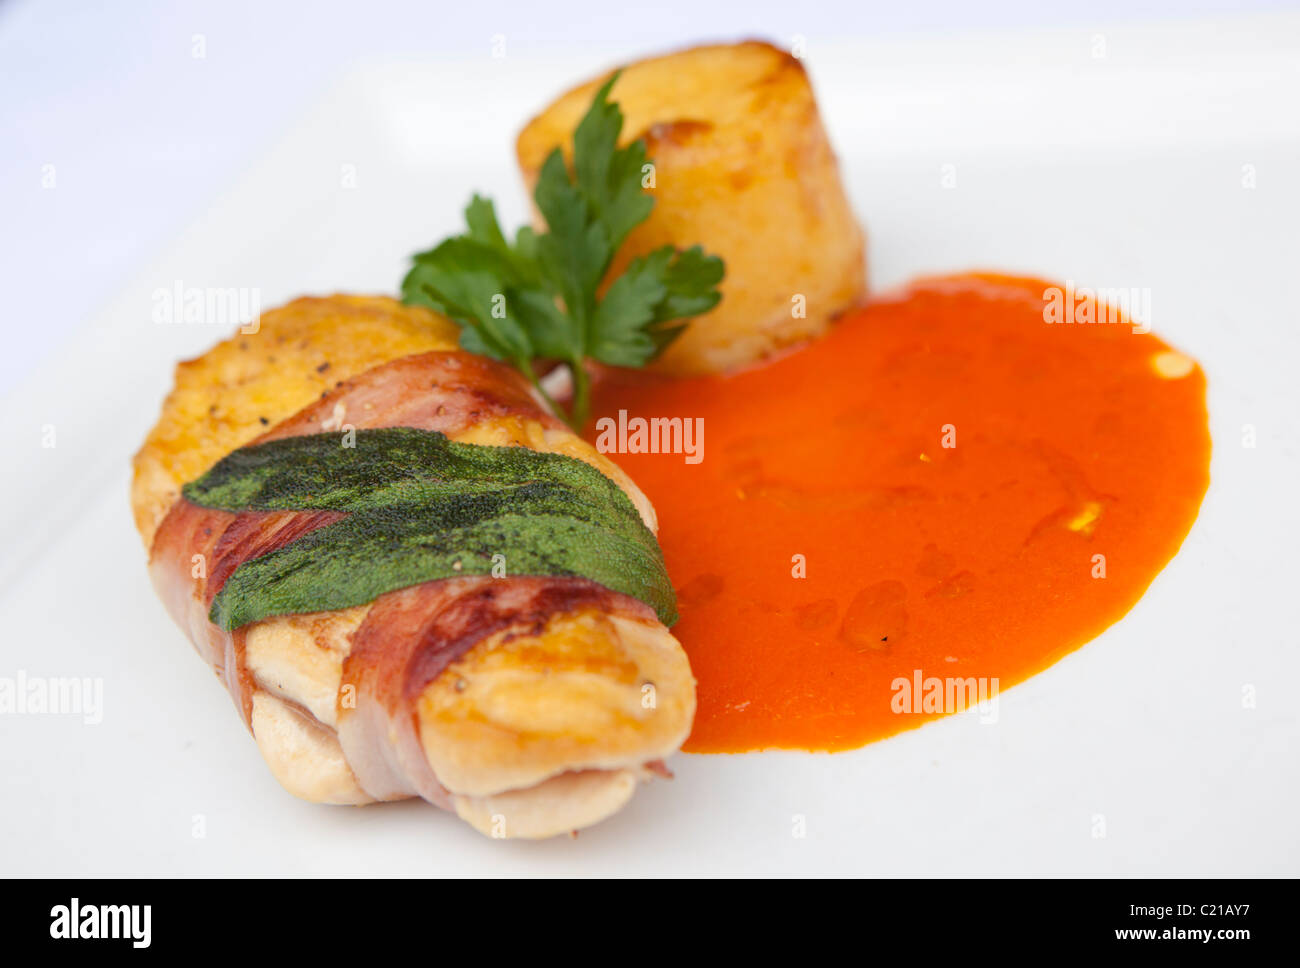 Main meal of chicken wrapped in parma ham with a tomato and mascarpone jus. - Stock Image